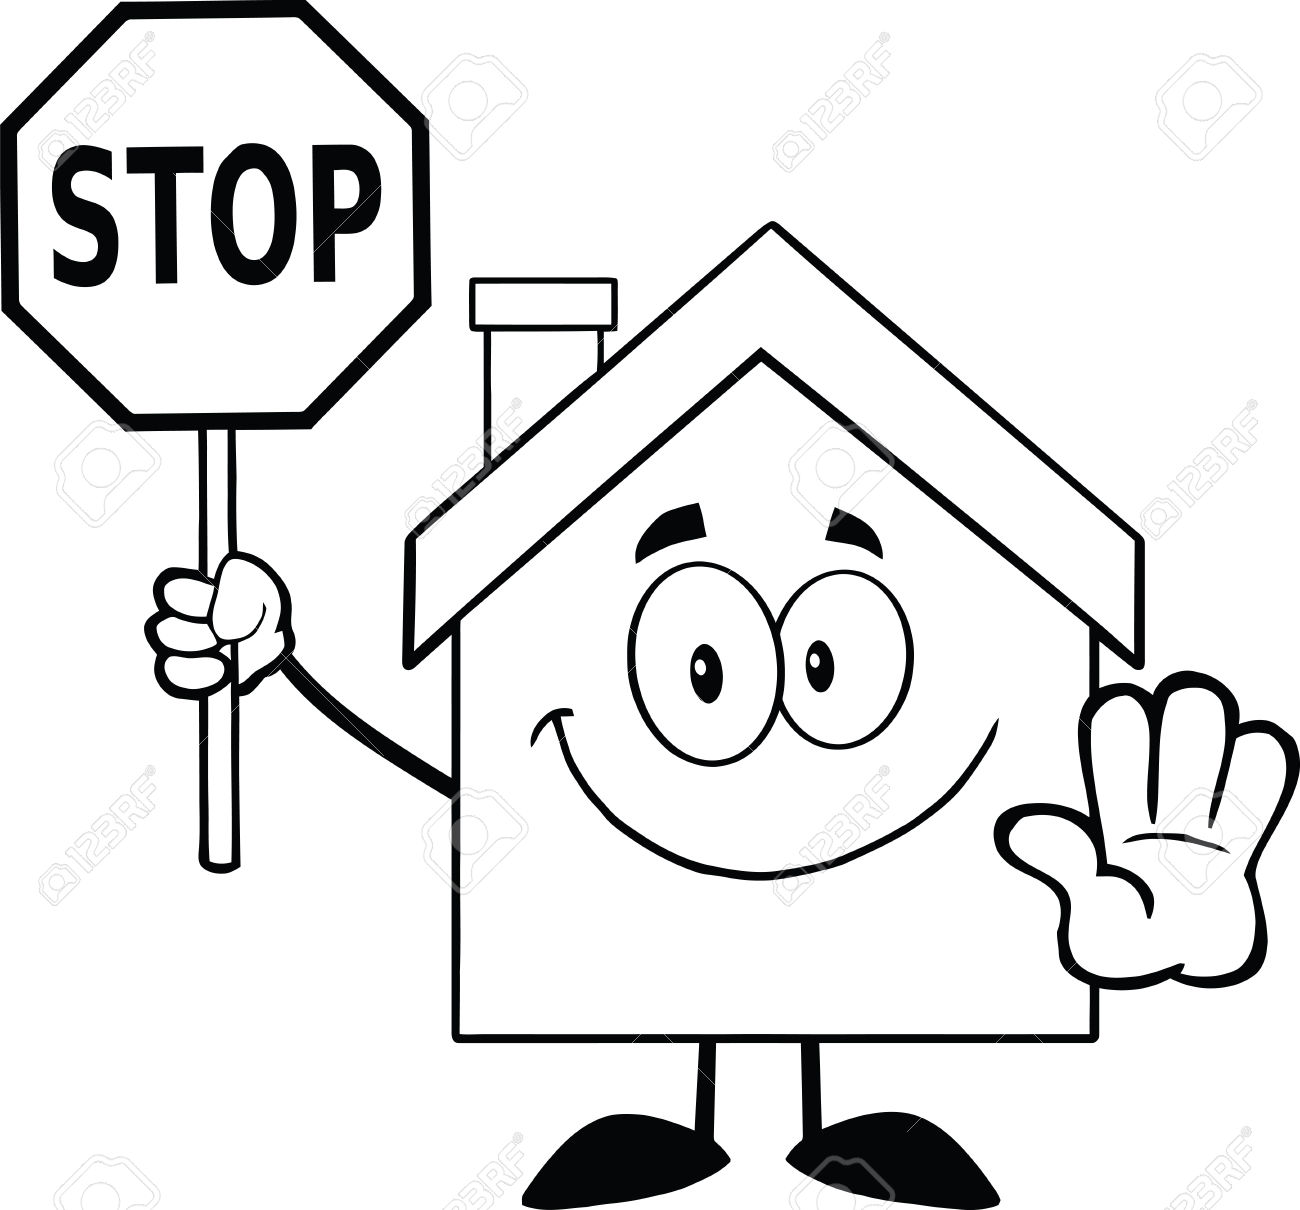 Black And White House Cartoon Character Holding A Stop Sign. Print Save this clip art